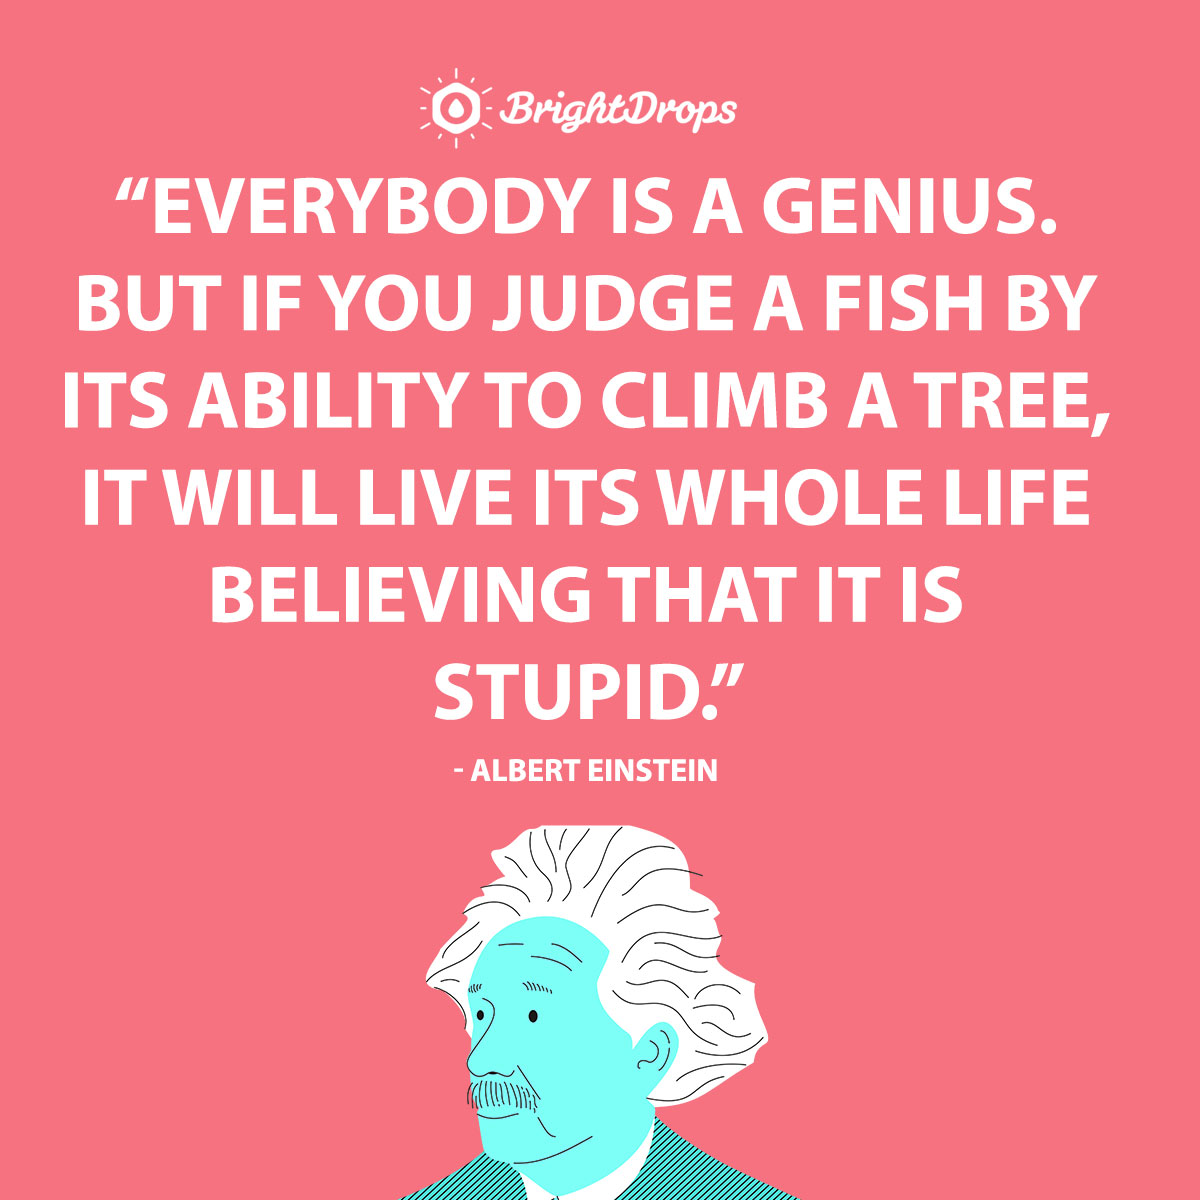 Everybody is a genius. But if you judge a fish by its ability to climb a tree, it will live its whole life believing that it is stupid. - Albert Einstein